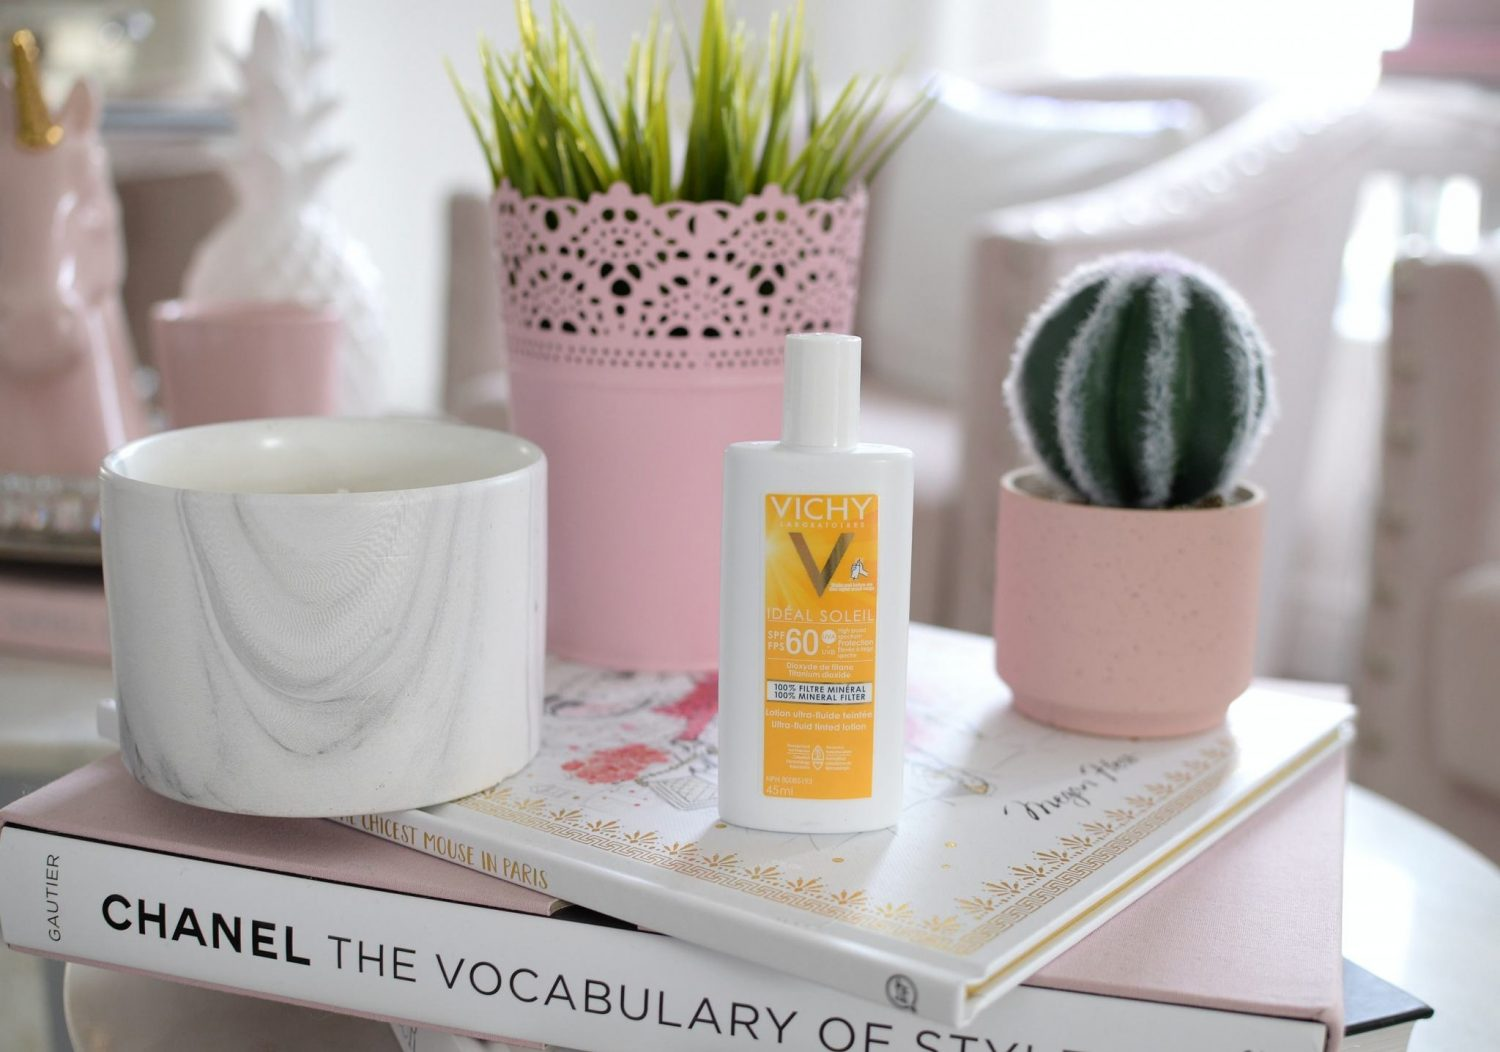 Vichy Idéal Soleil SPF 60 Ultra-Fluid Tinted Lotion